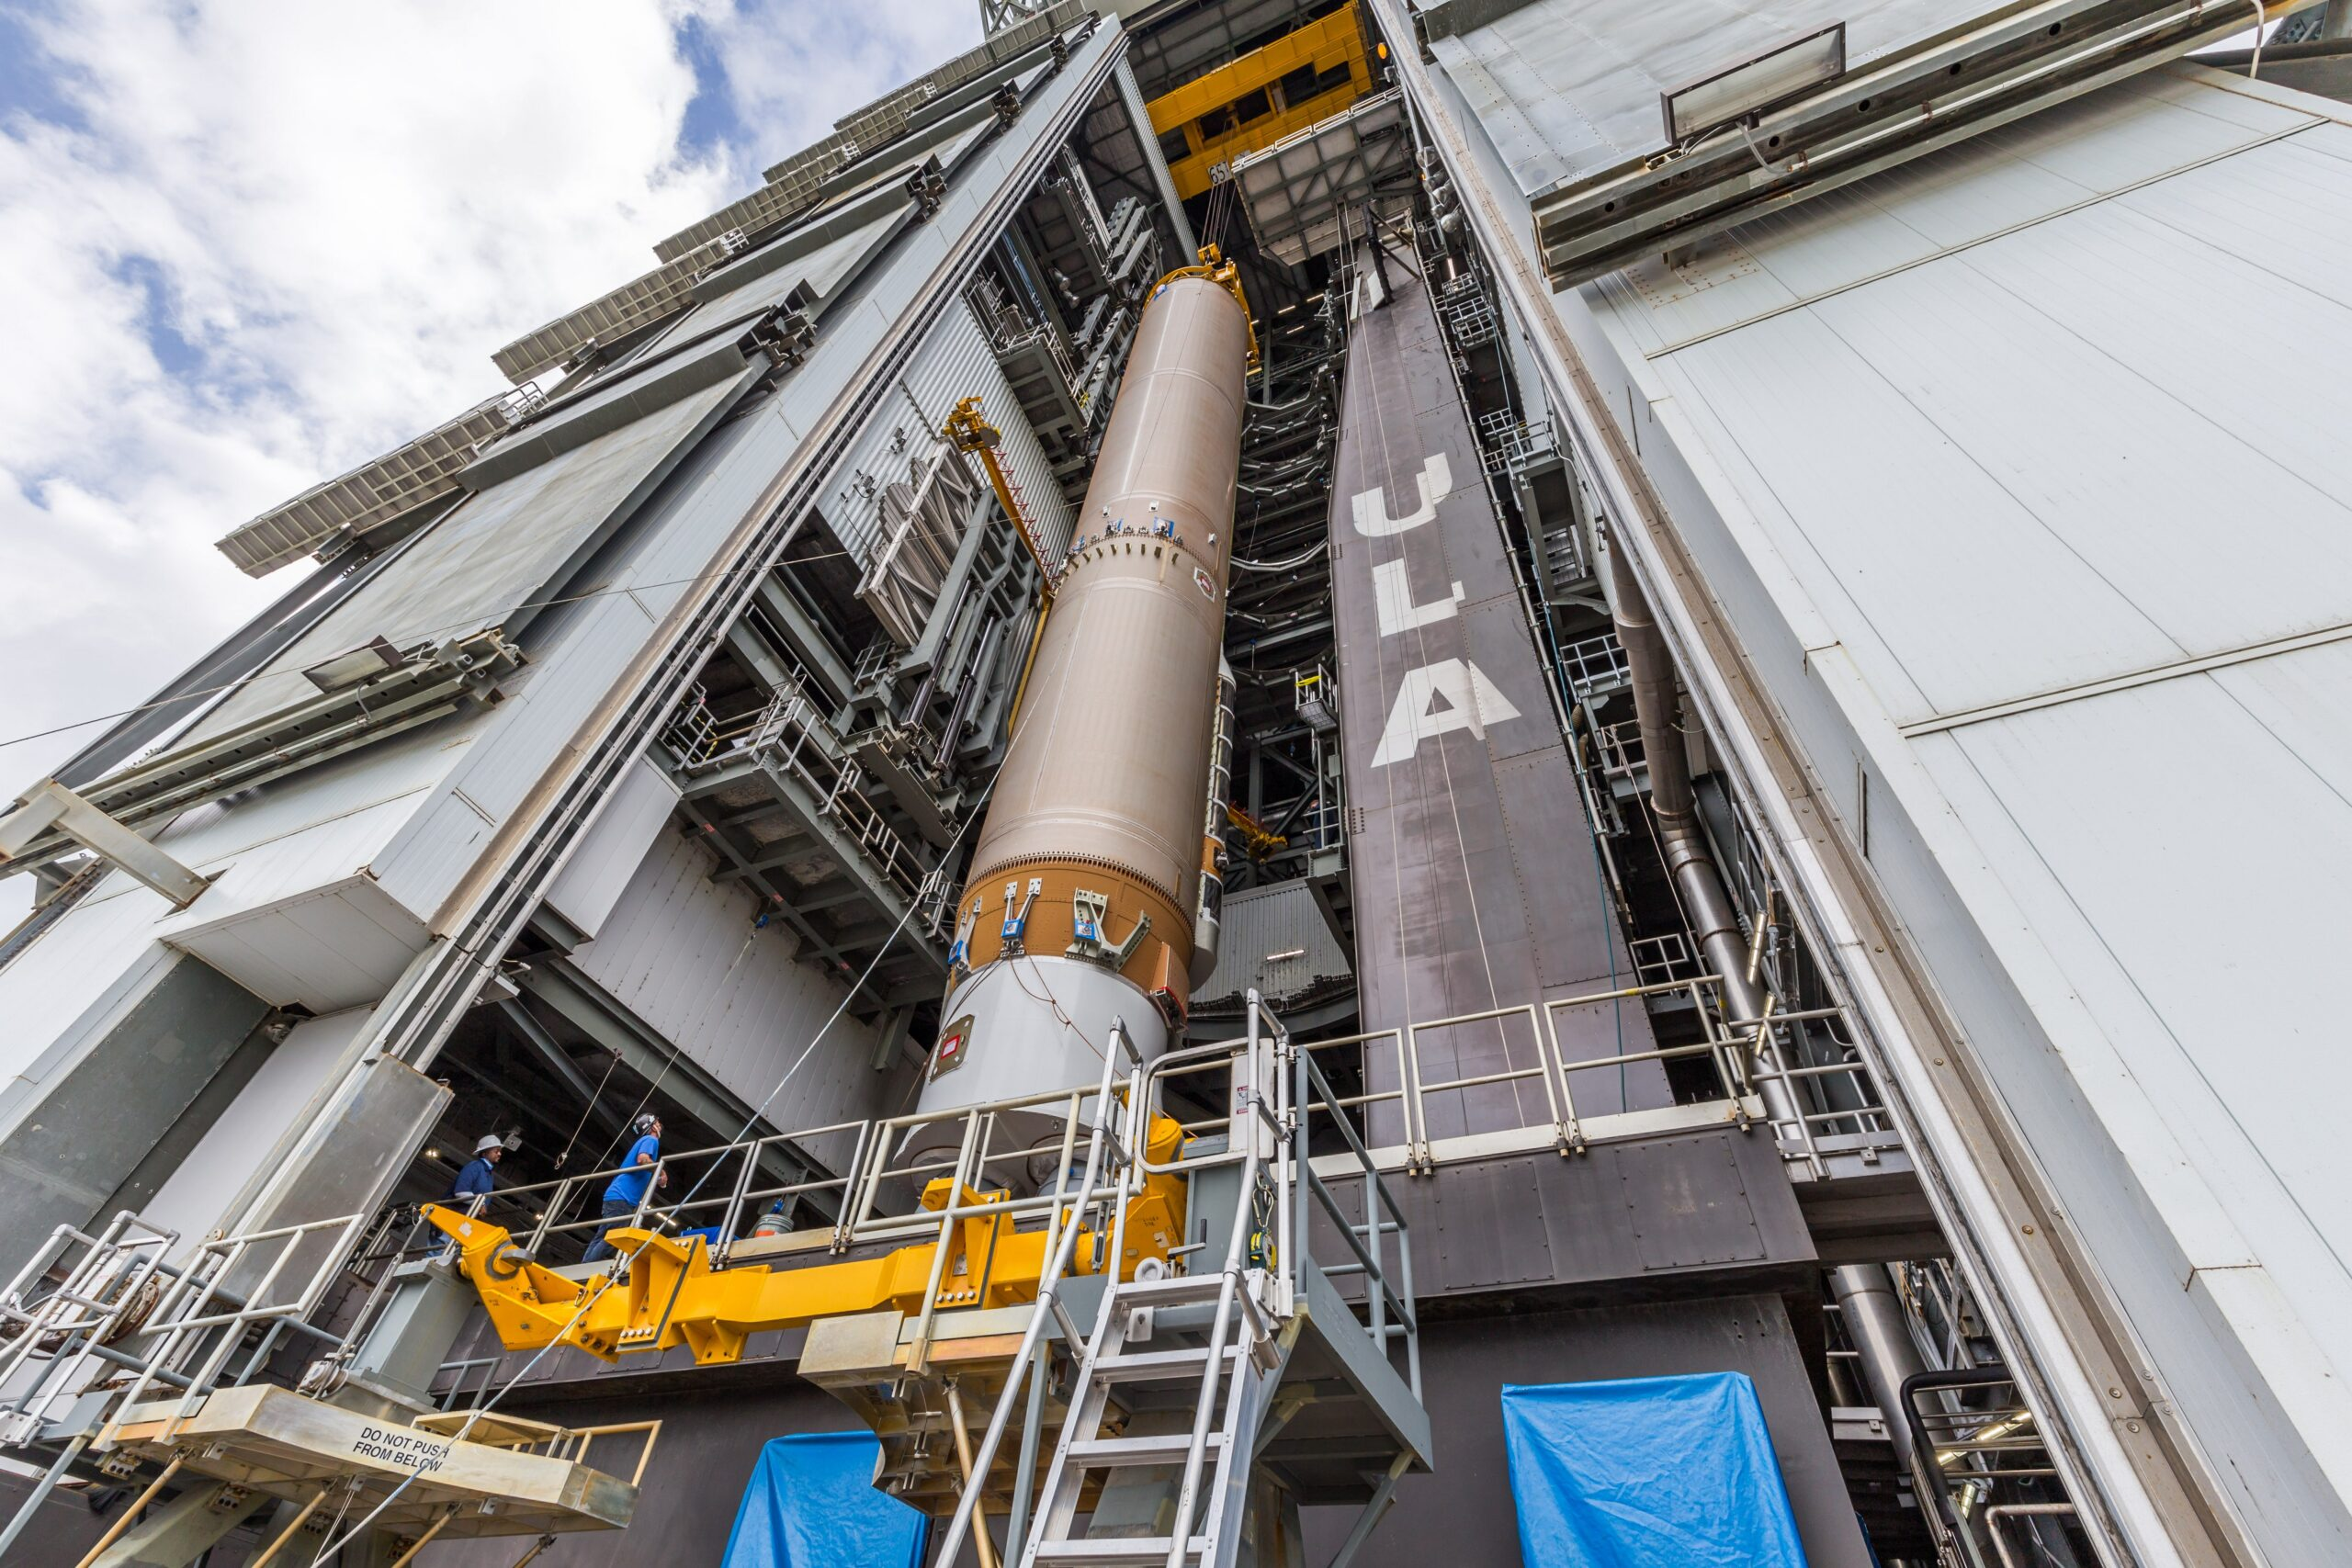 ULA sets new target launch date for Space Test Program STP-3 mission